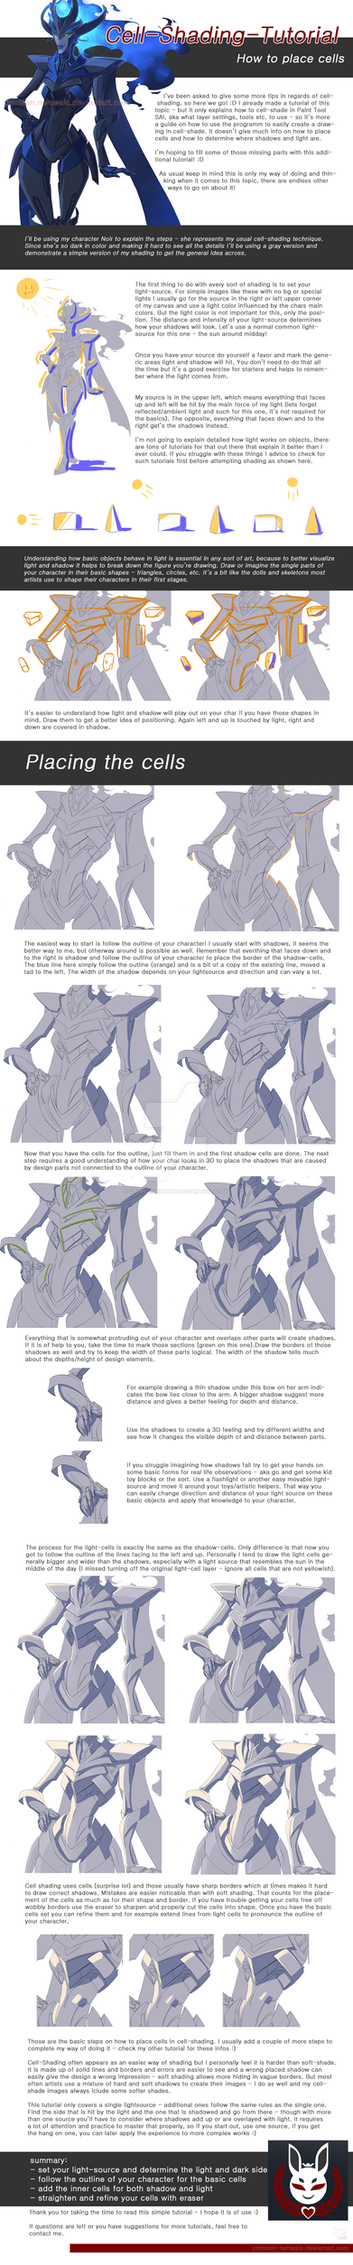 Basic Cell Shading Tutorial 2 - Placing Cells by crimson-nemesis